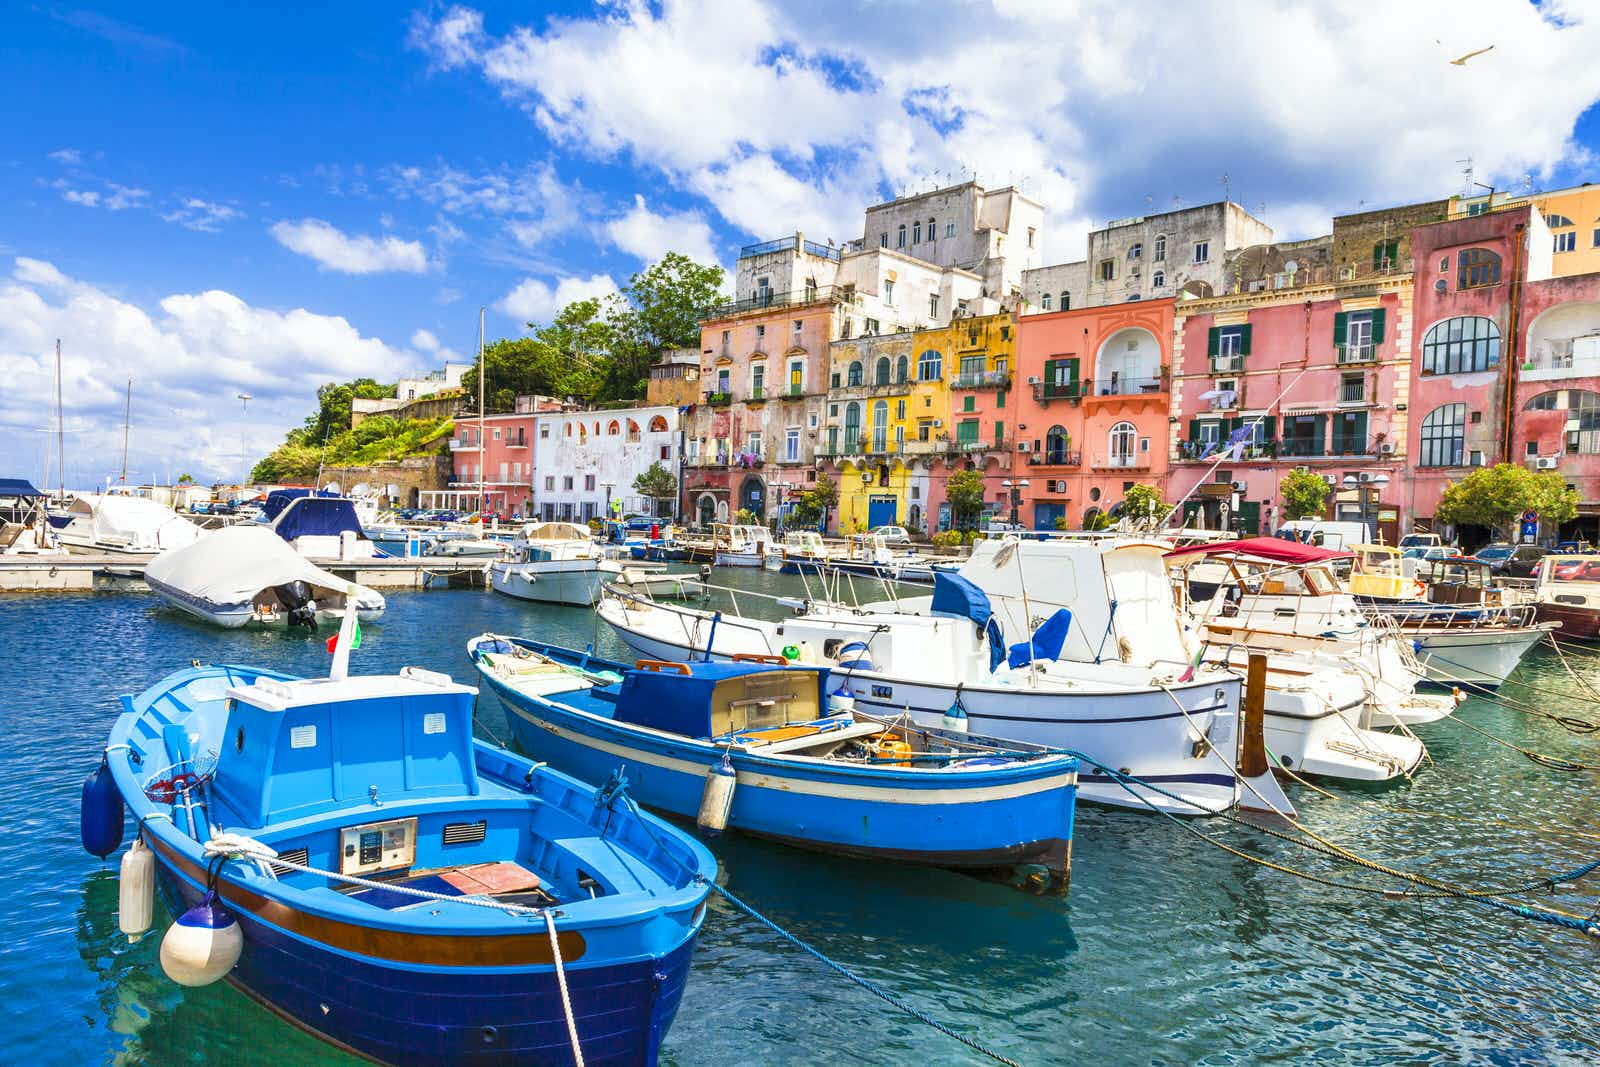 The technicolour coastal harbours of Procida are well worth lingering in © leoks/Shutterstock